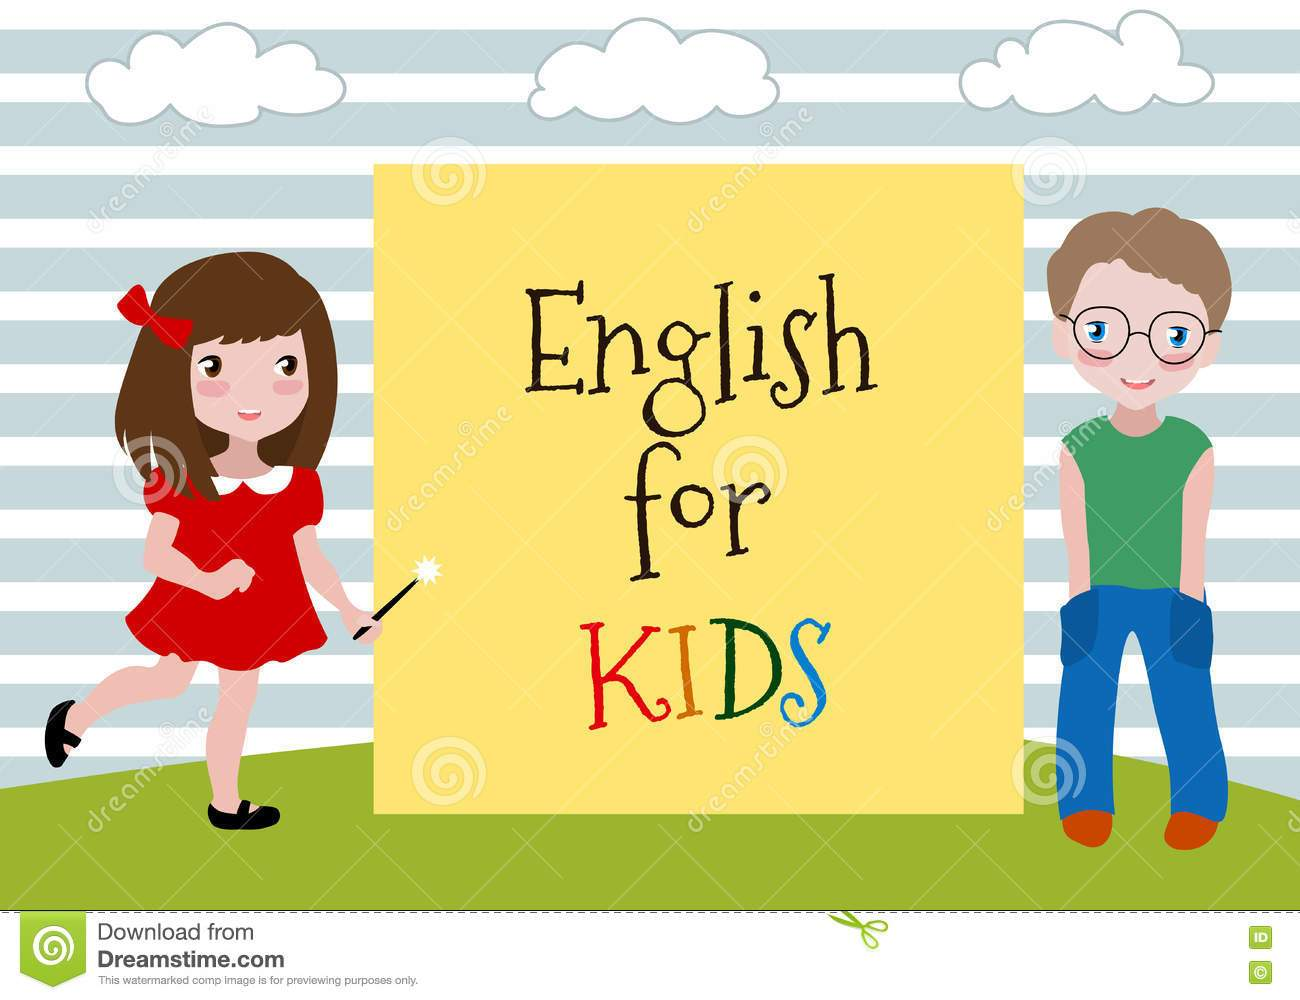 Kids learning english clipart 1 » Clipart Portal.